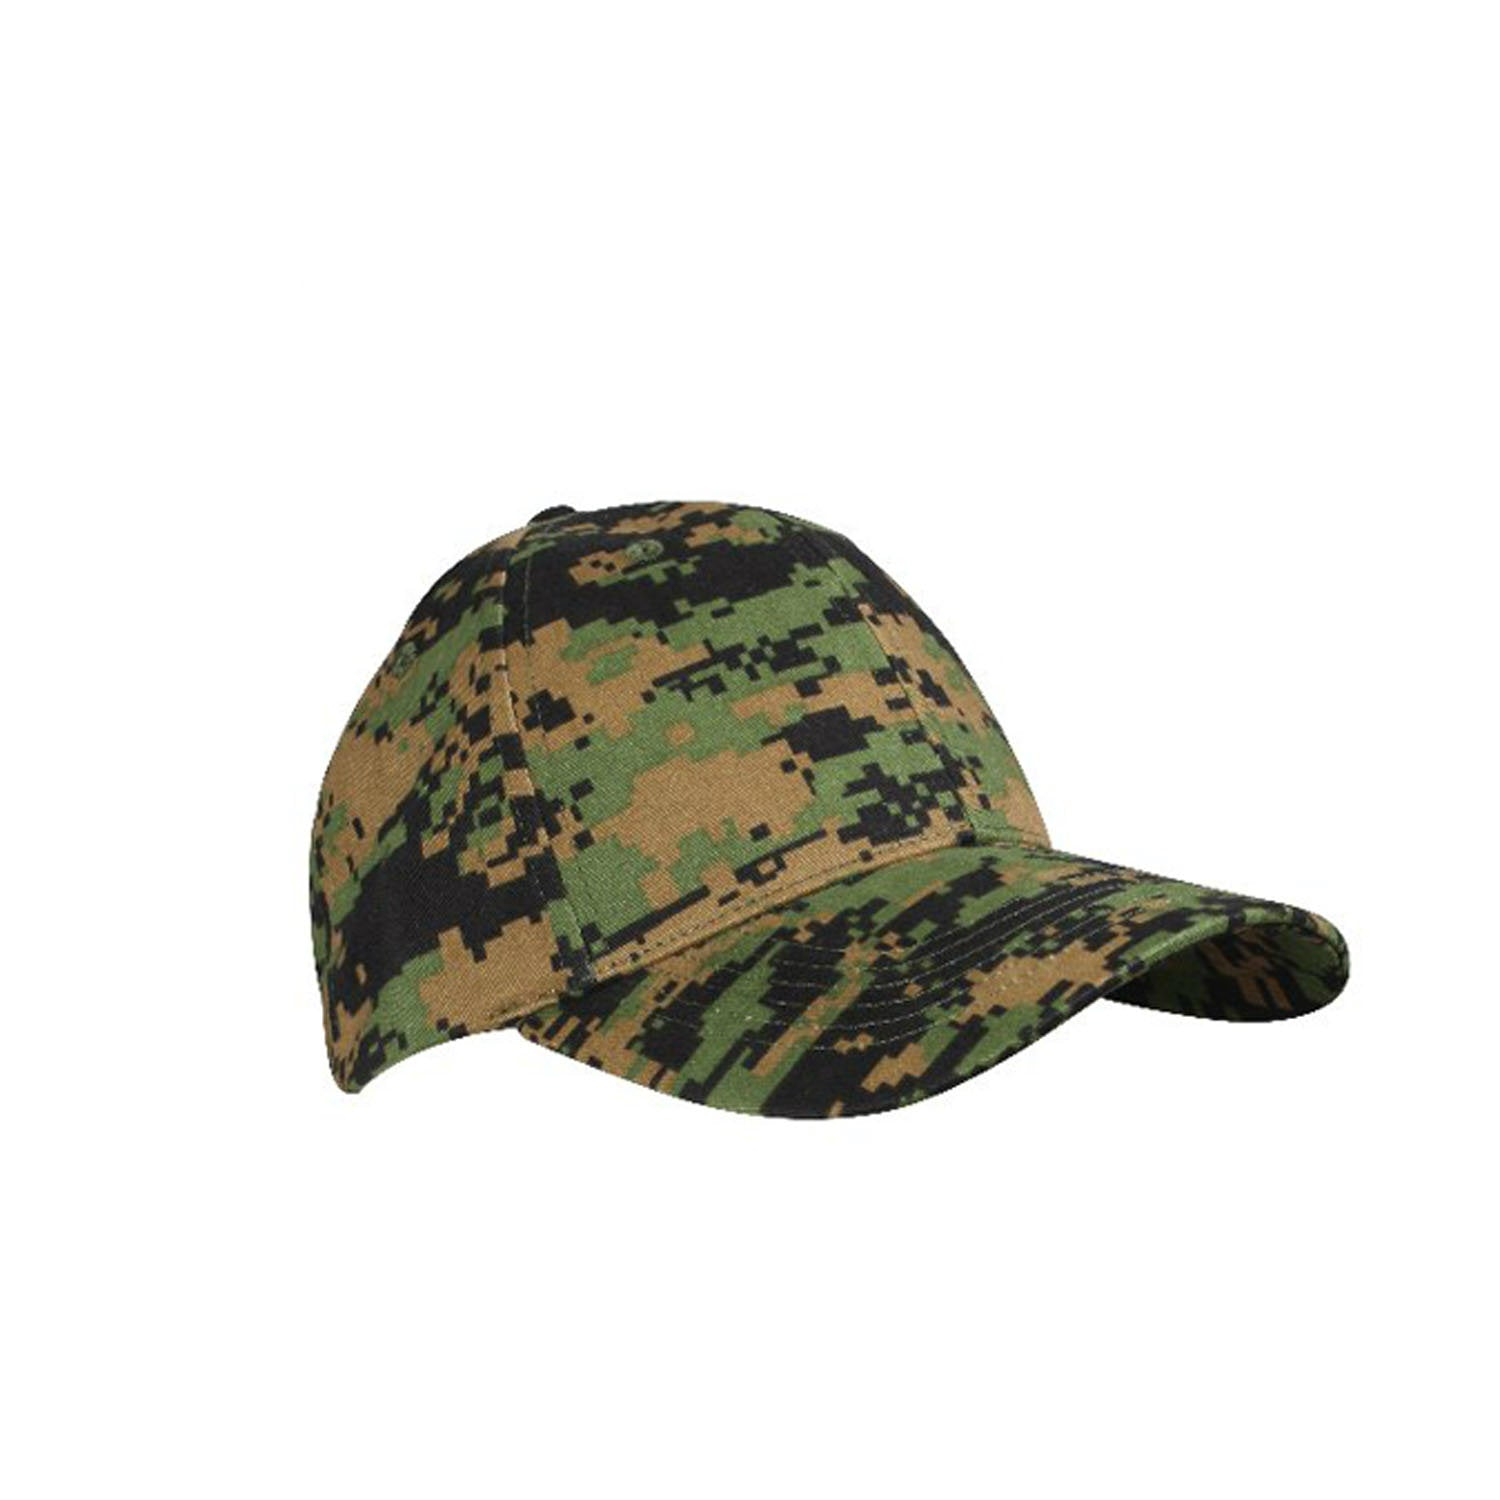 Woodland Digital Camouflage Hat